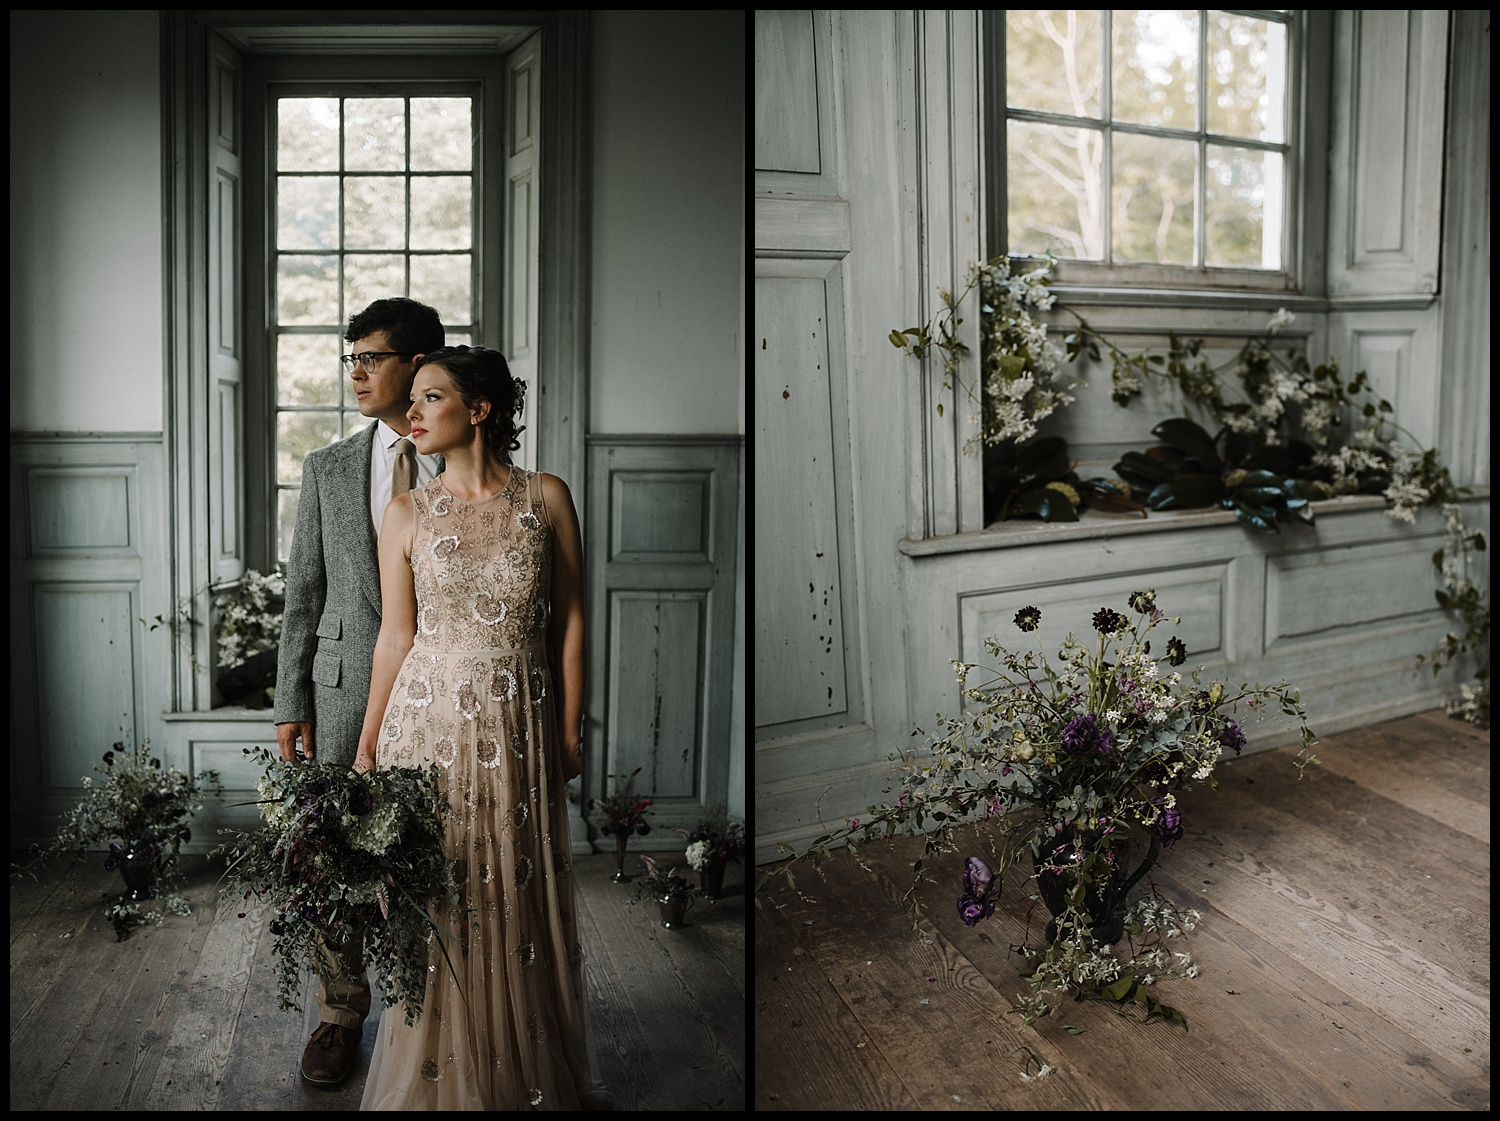 Salubria Historic Manor House Virginia - Moody Scottish Highland Wedding Styled Shoot - White Sails Creative - Sage and Silhouettes - BHLDN - Bijous Sweet Treats_120.jpg